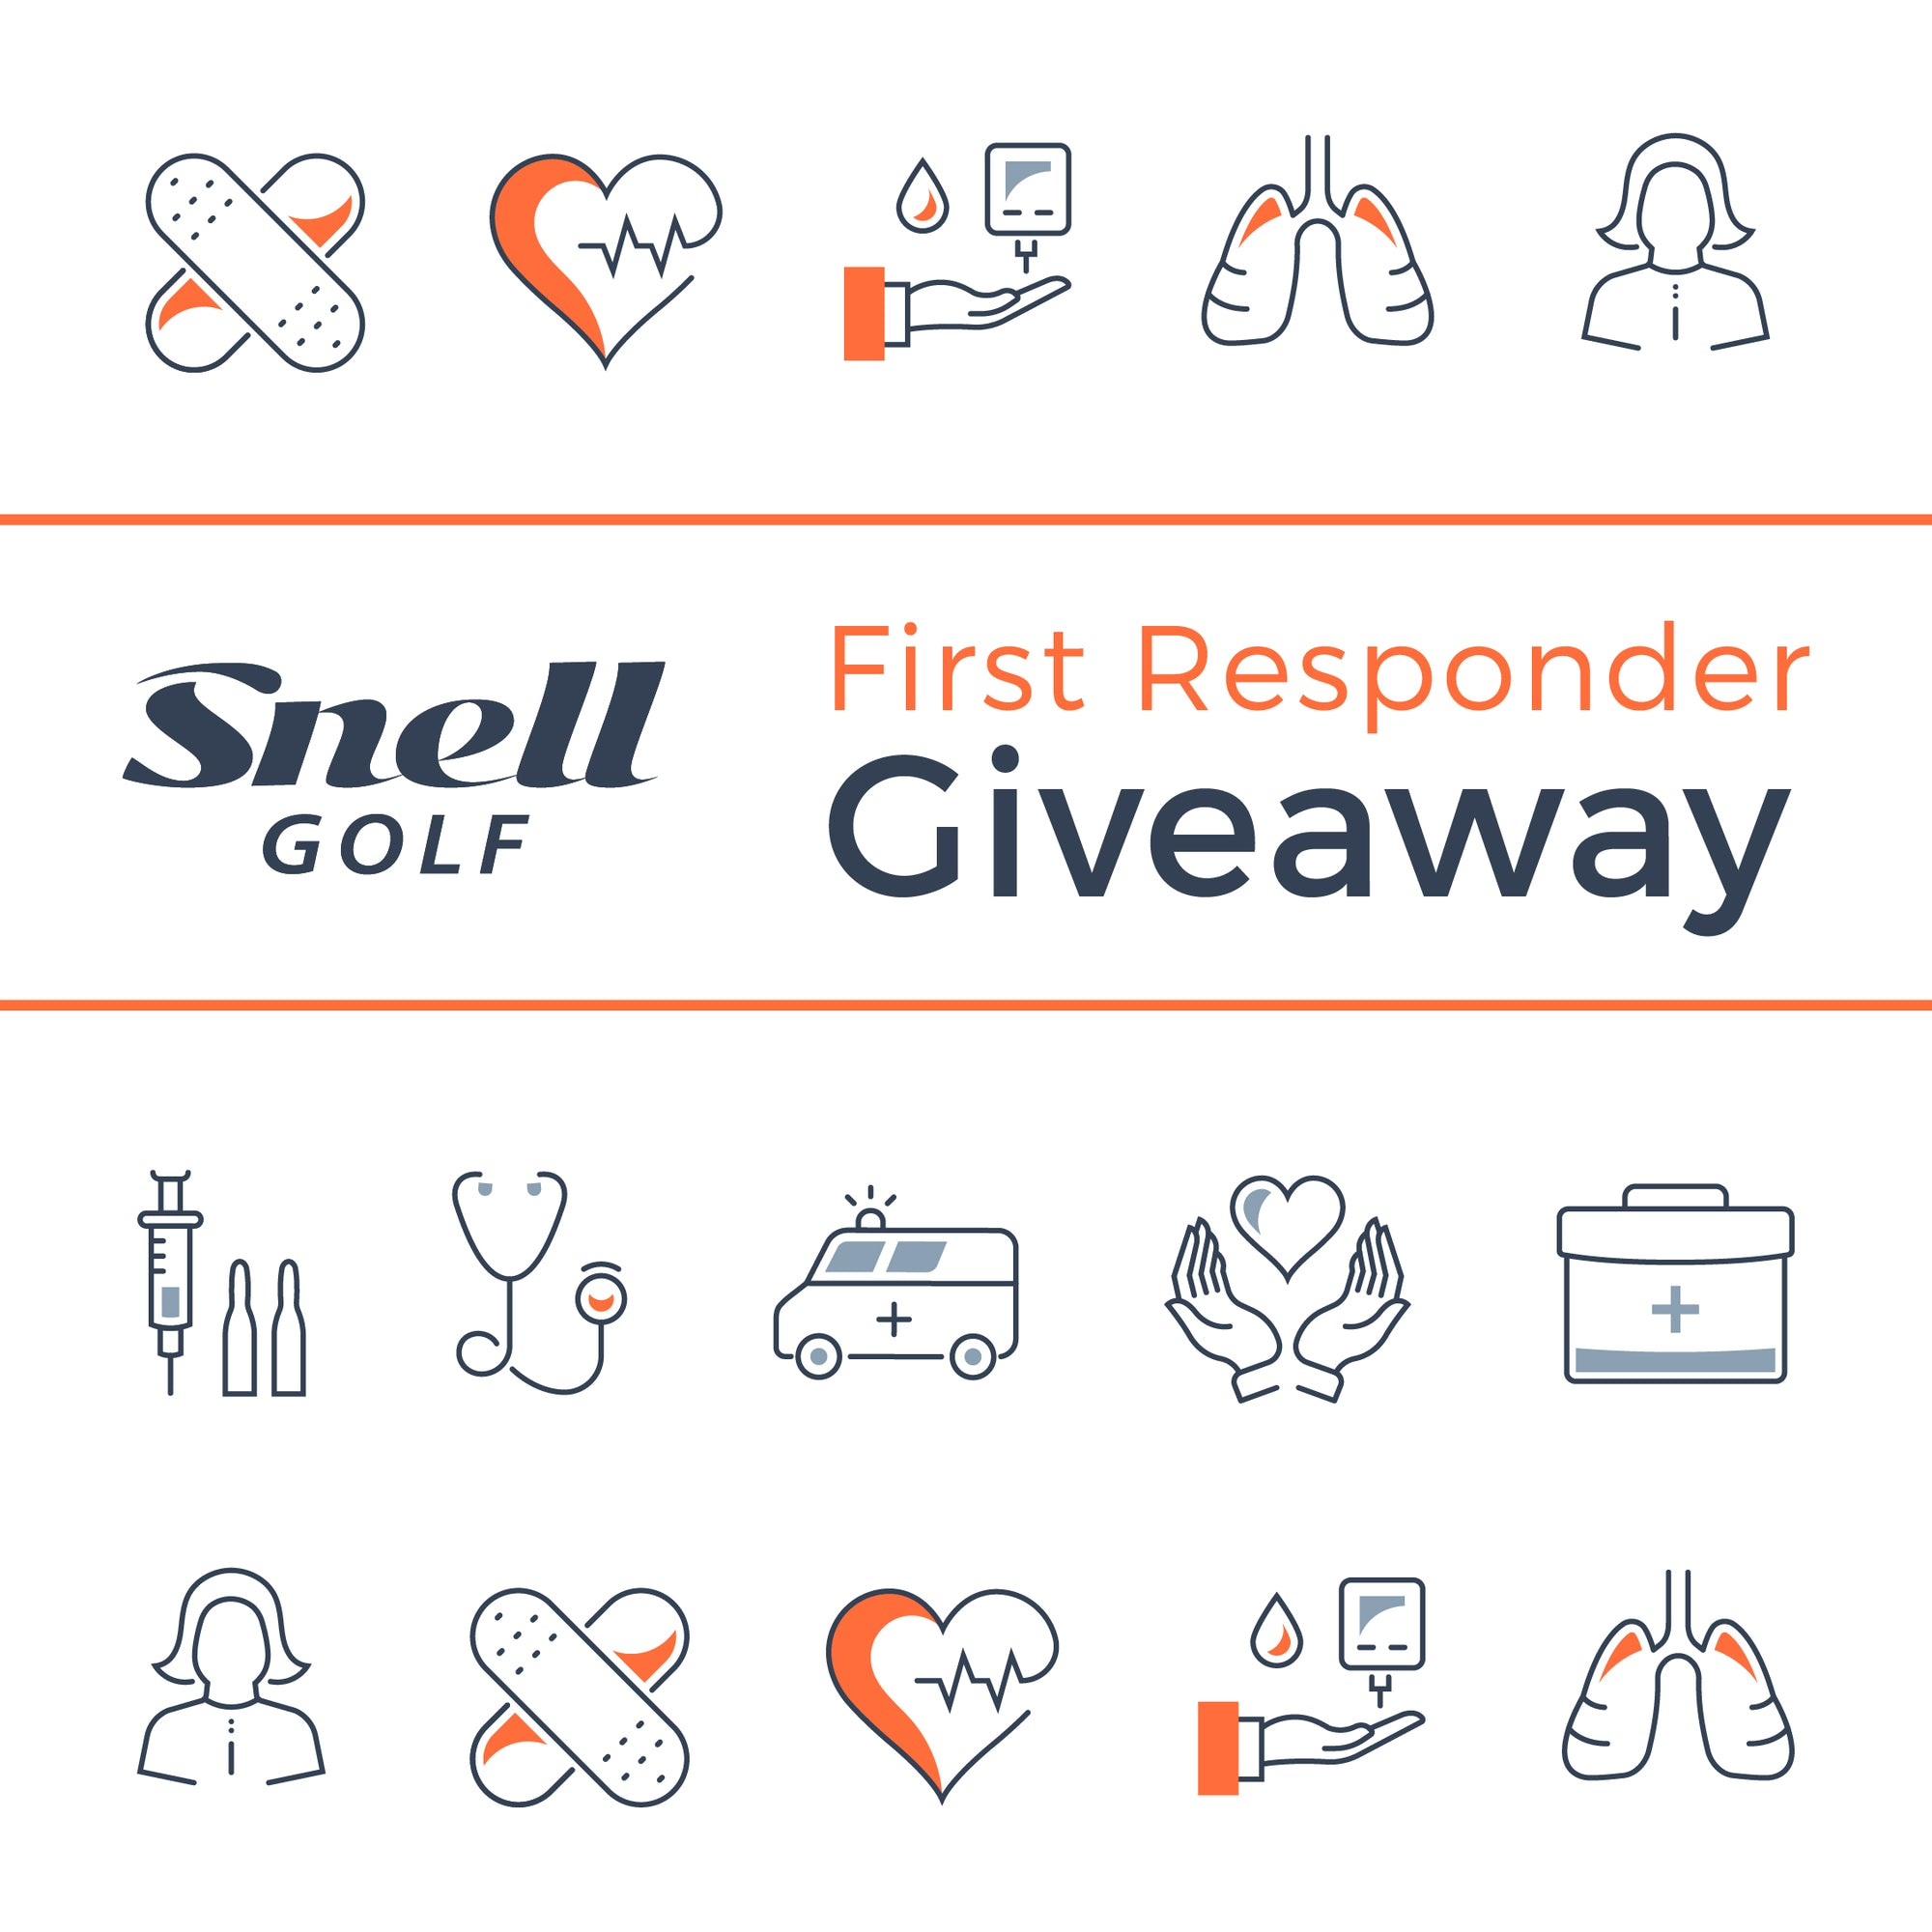 First Responders Giveaway!